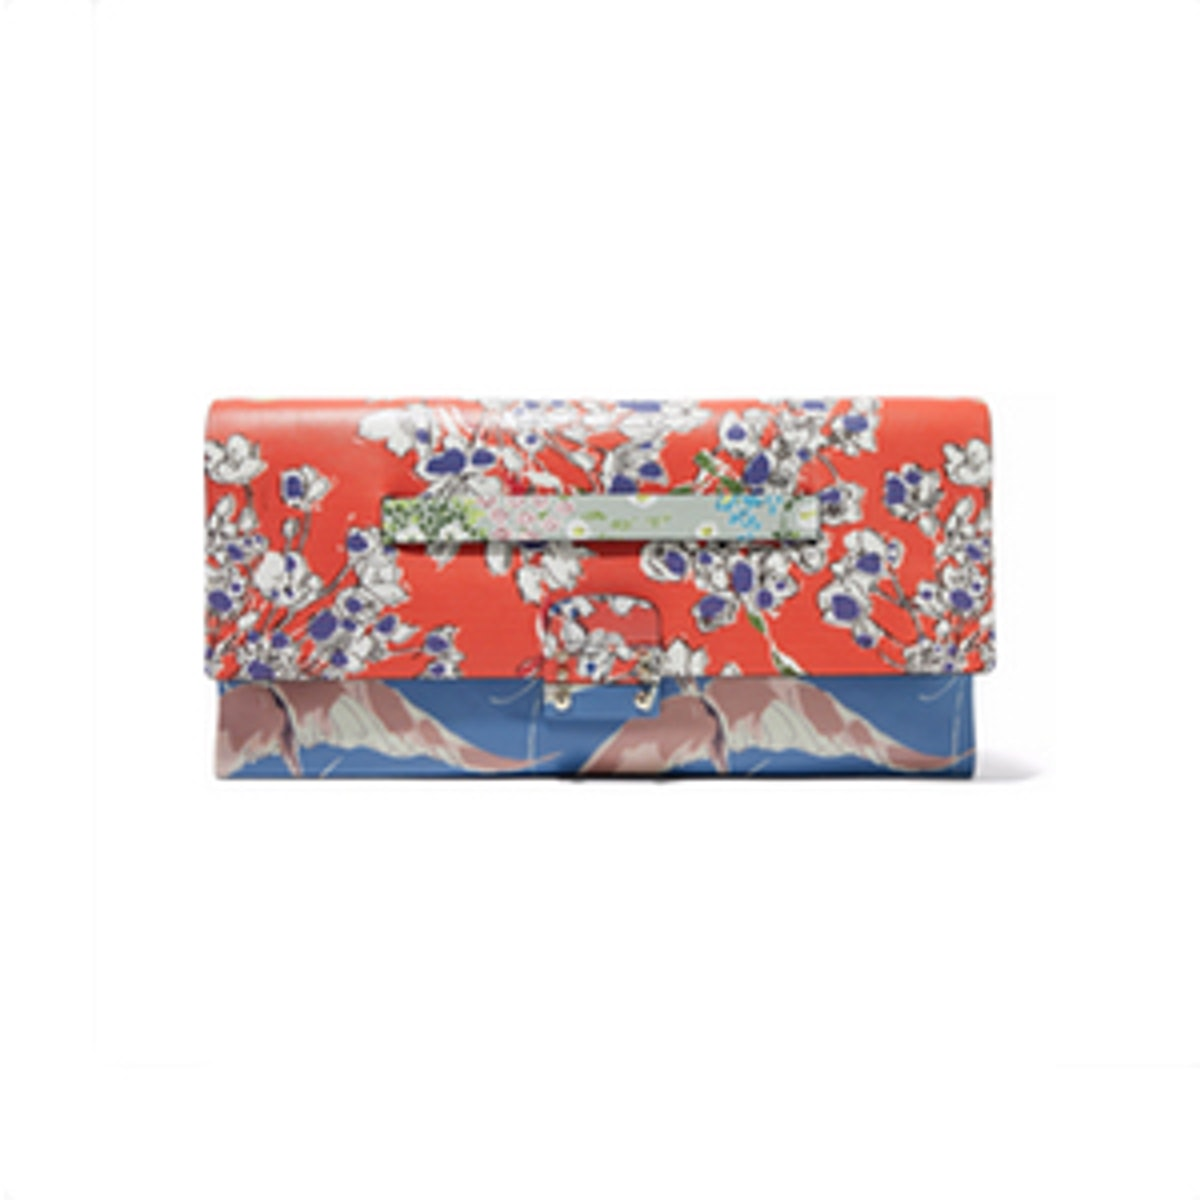 Mime Printed Leather Clutch